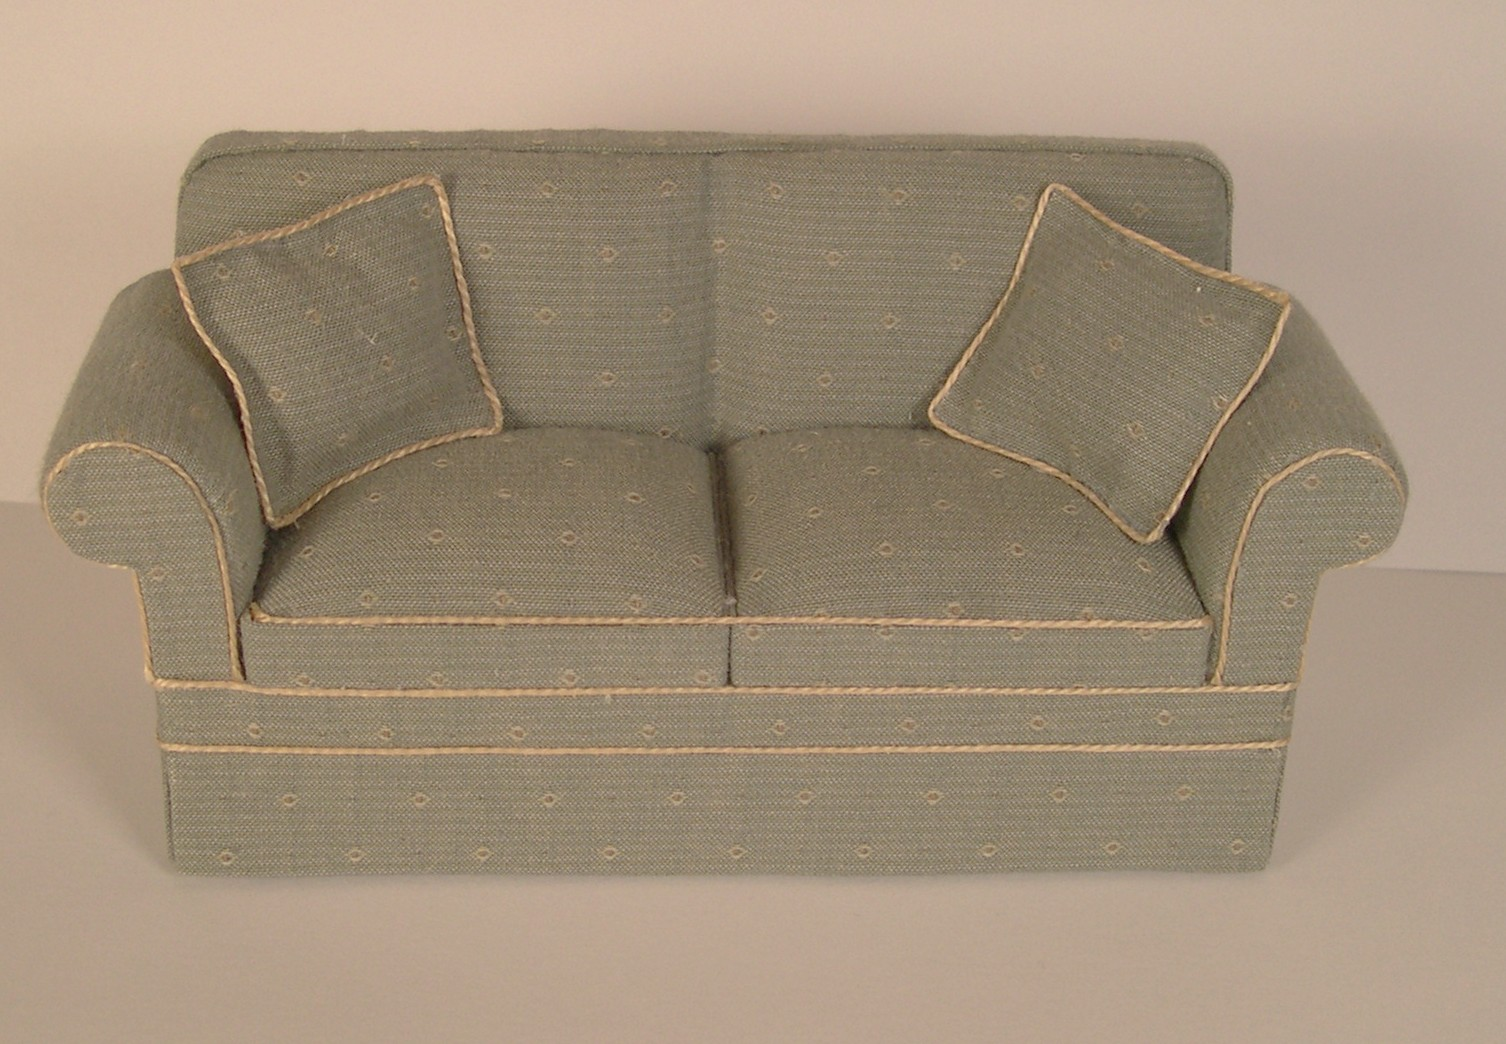 Decor slipcovers for sofas with cushions separate sofa covers with separate cushion covers Loveseat t cushion slipcovers